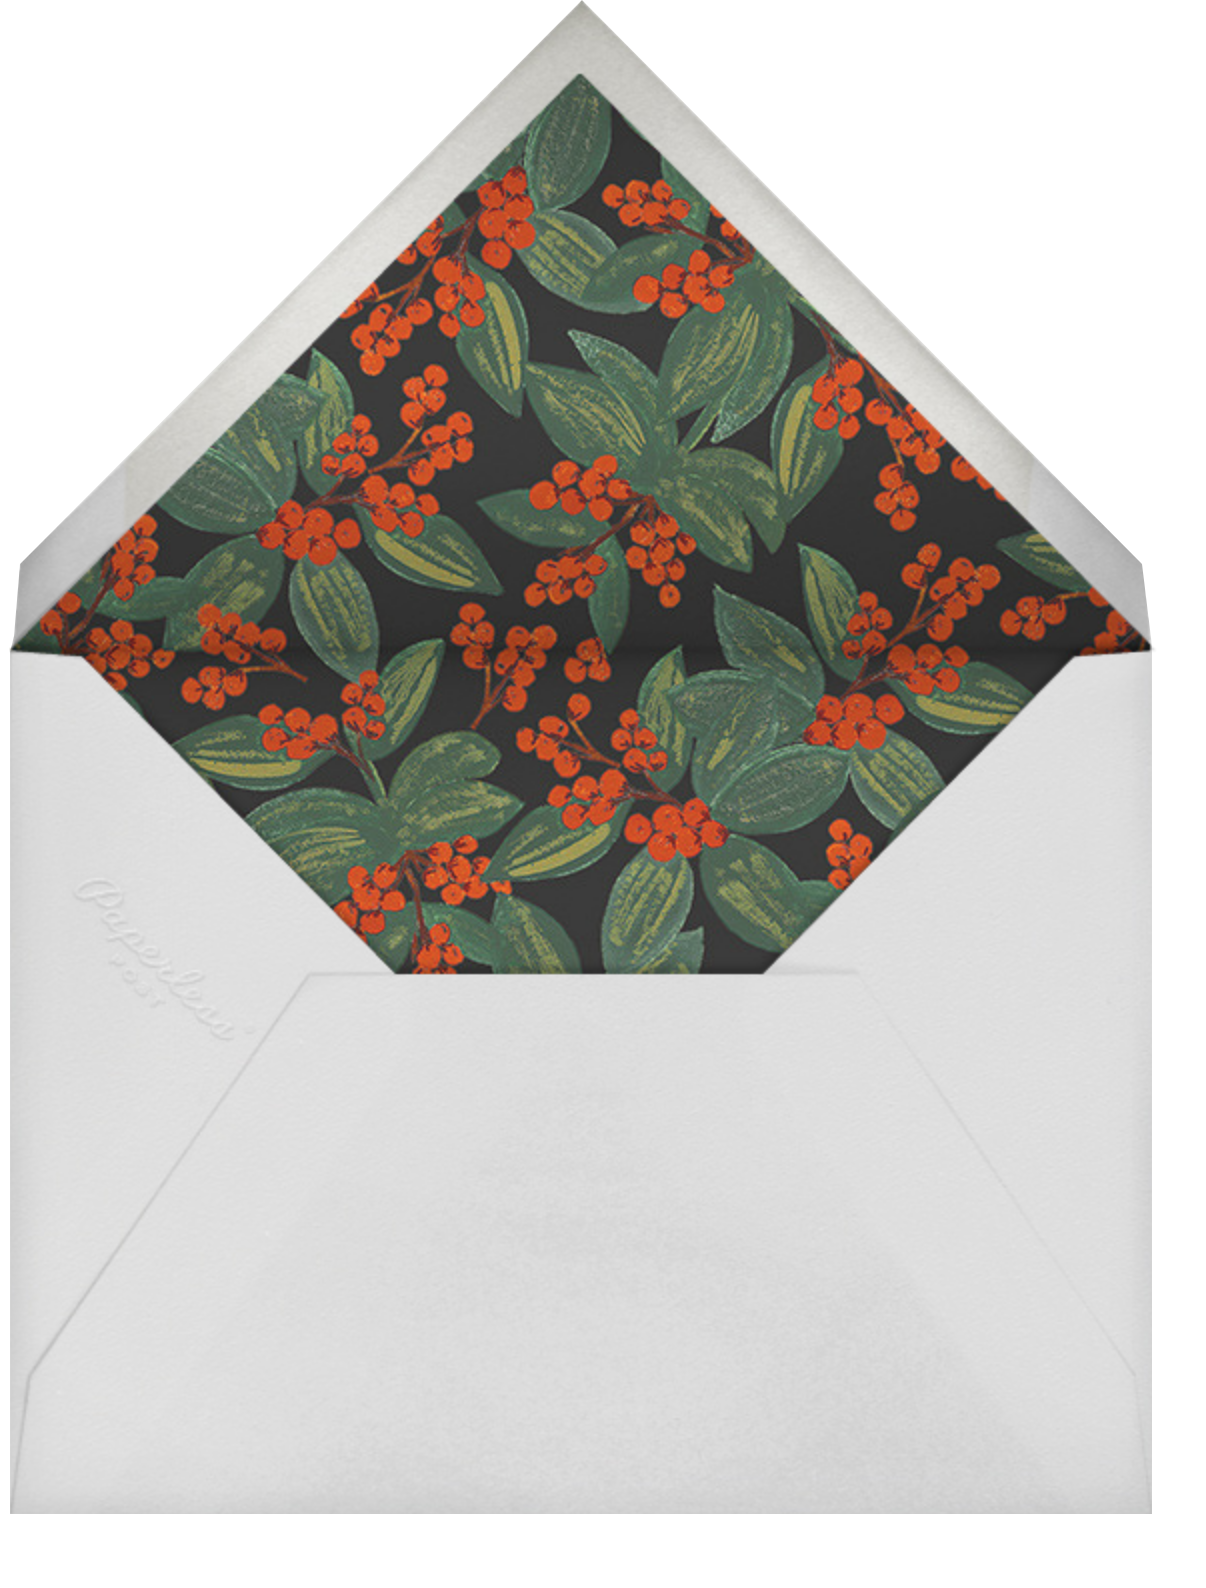 Winterberries Present - Rifle Paper Co. - Holiday cards - envelope back